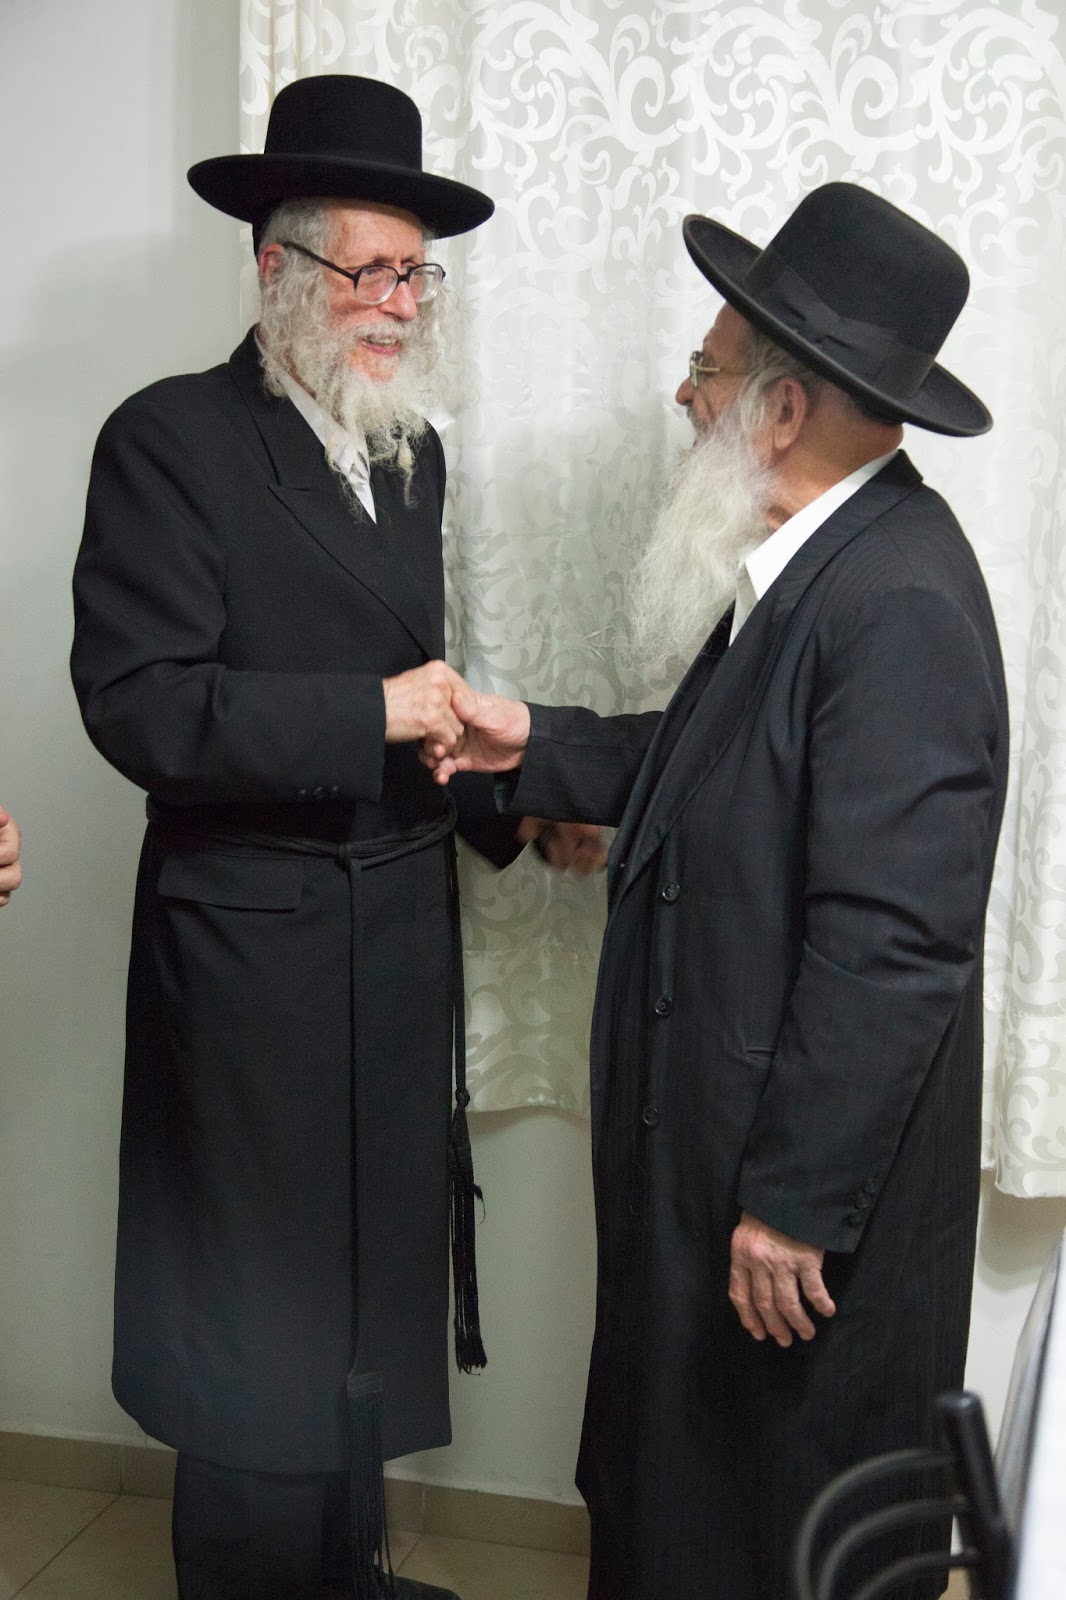 Rabbi Eliezer Berland and Rabbi Nachman Rosenthal